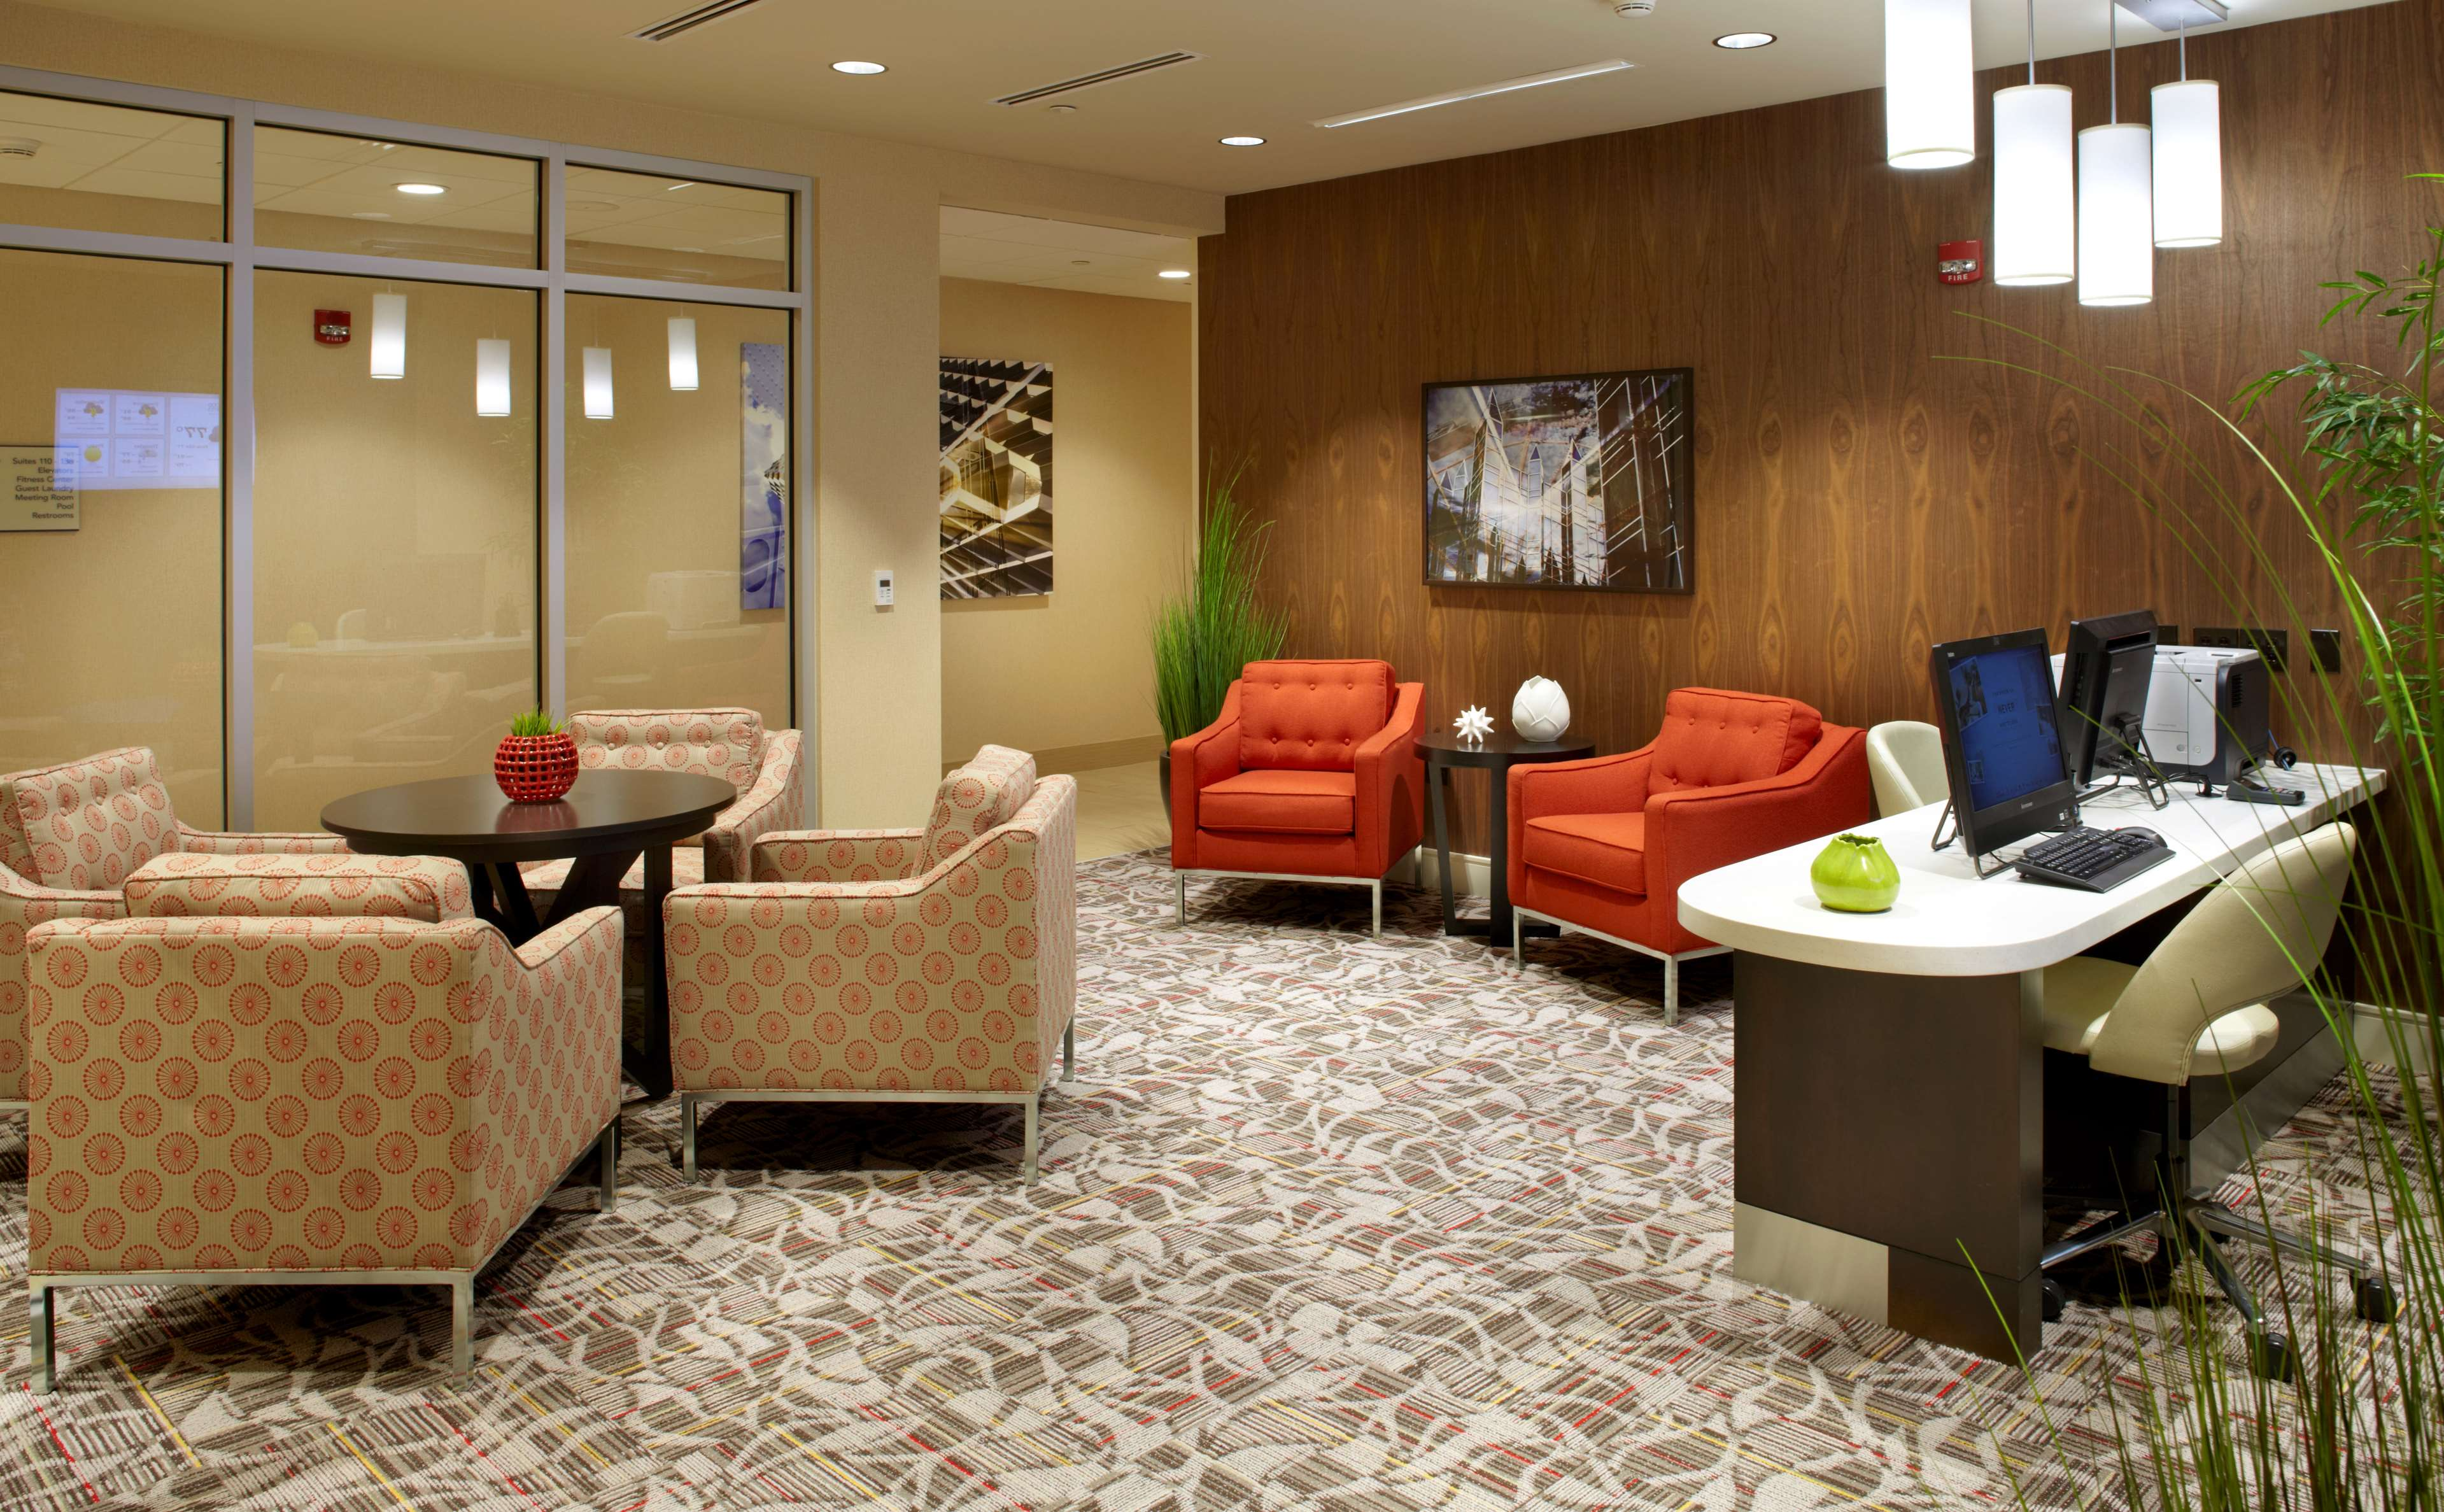 Homewood Suites by Hilton Pittsburgh Airport Robinson Mall Area PA image 25